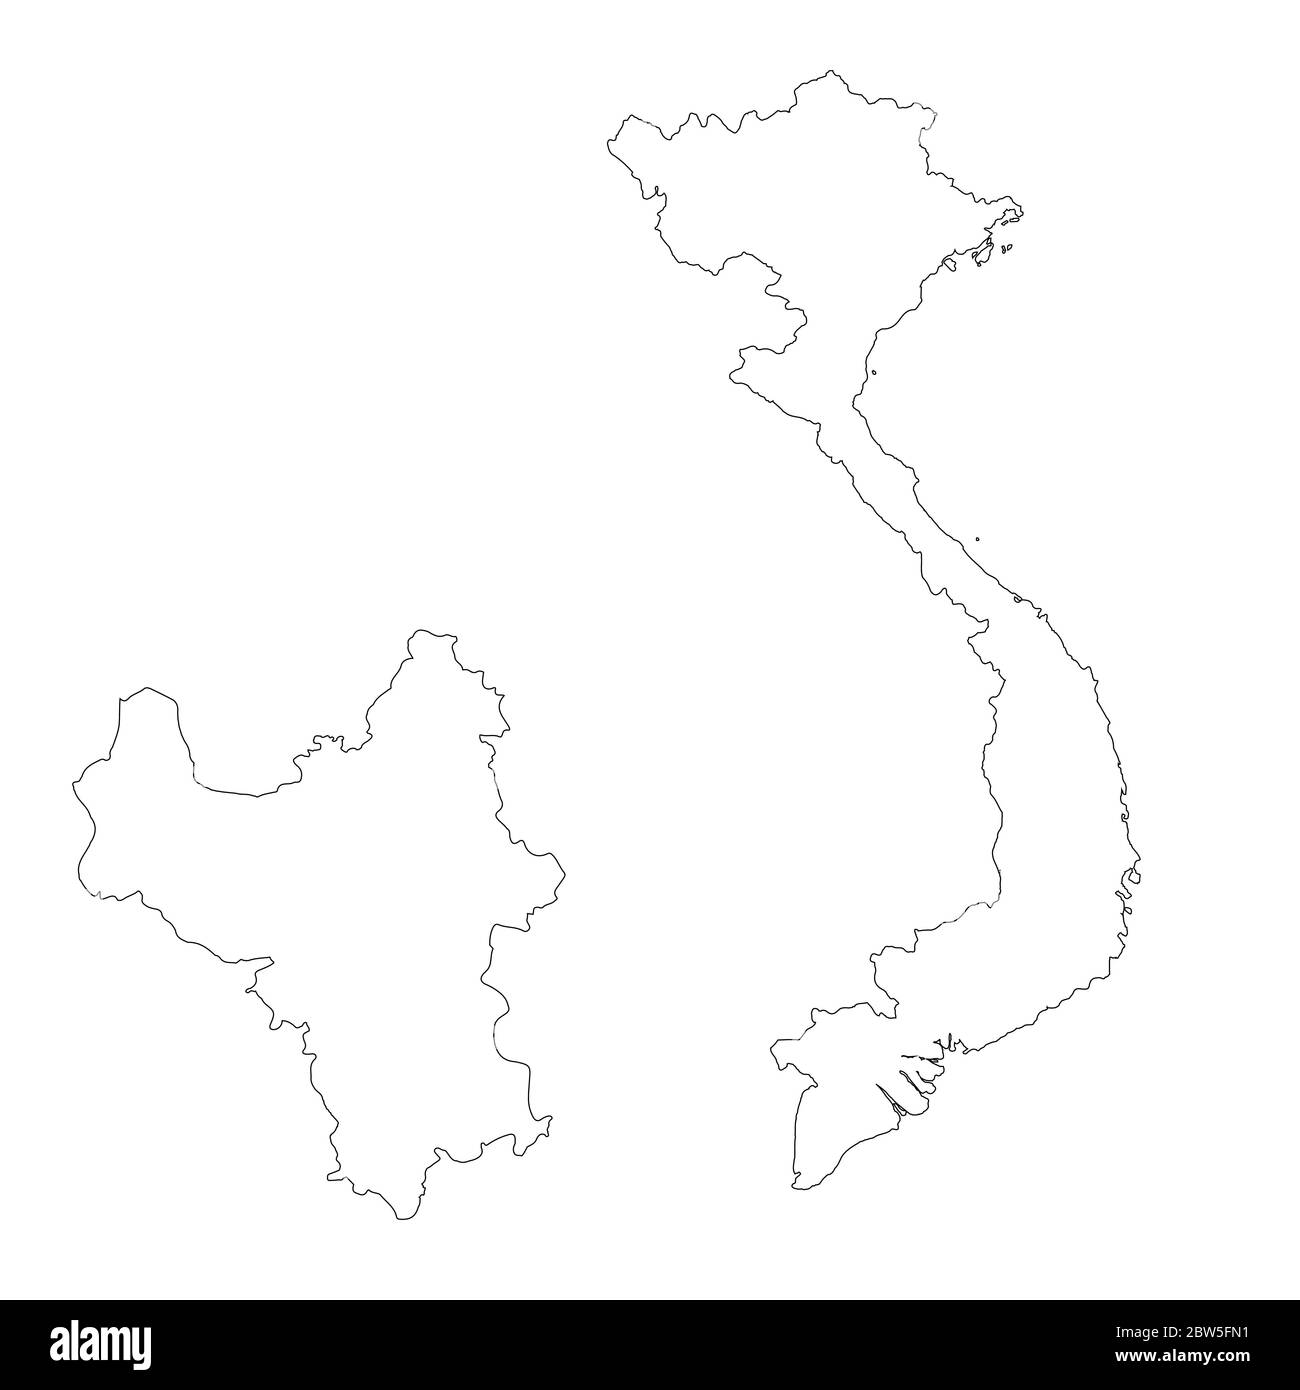 Picture of: Hanoi Vietnam Maps Cartography Geography Hanoi High Resolution Stock Photography And Images Alamy